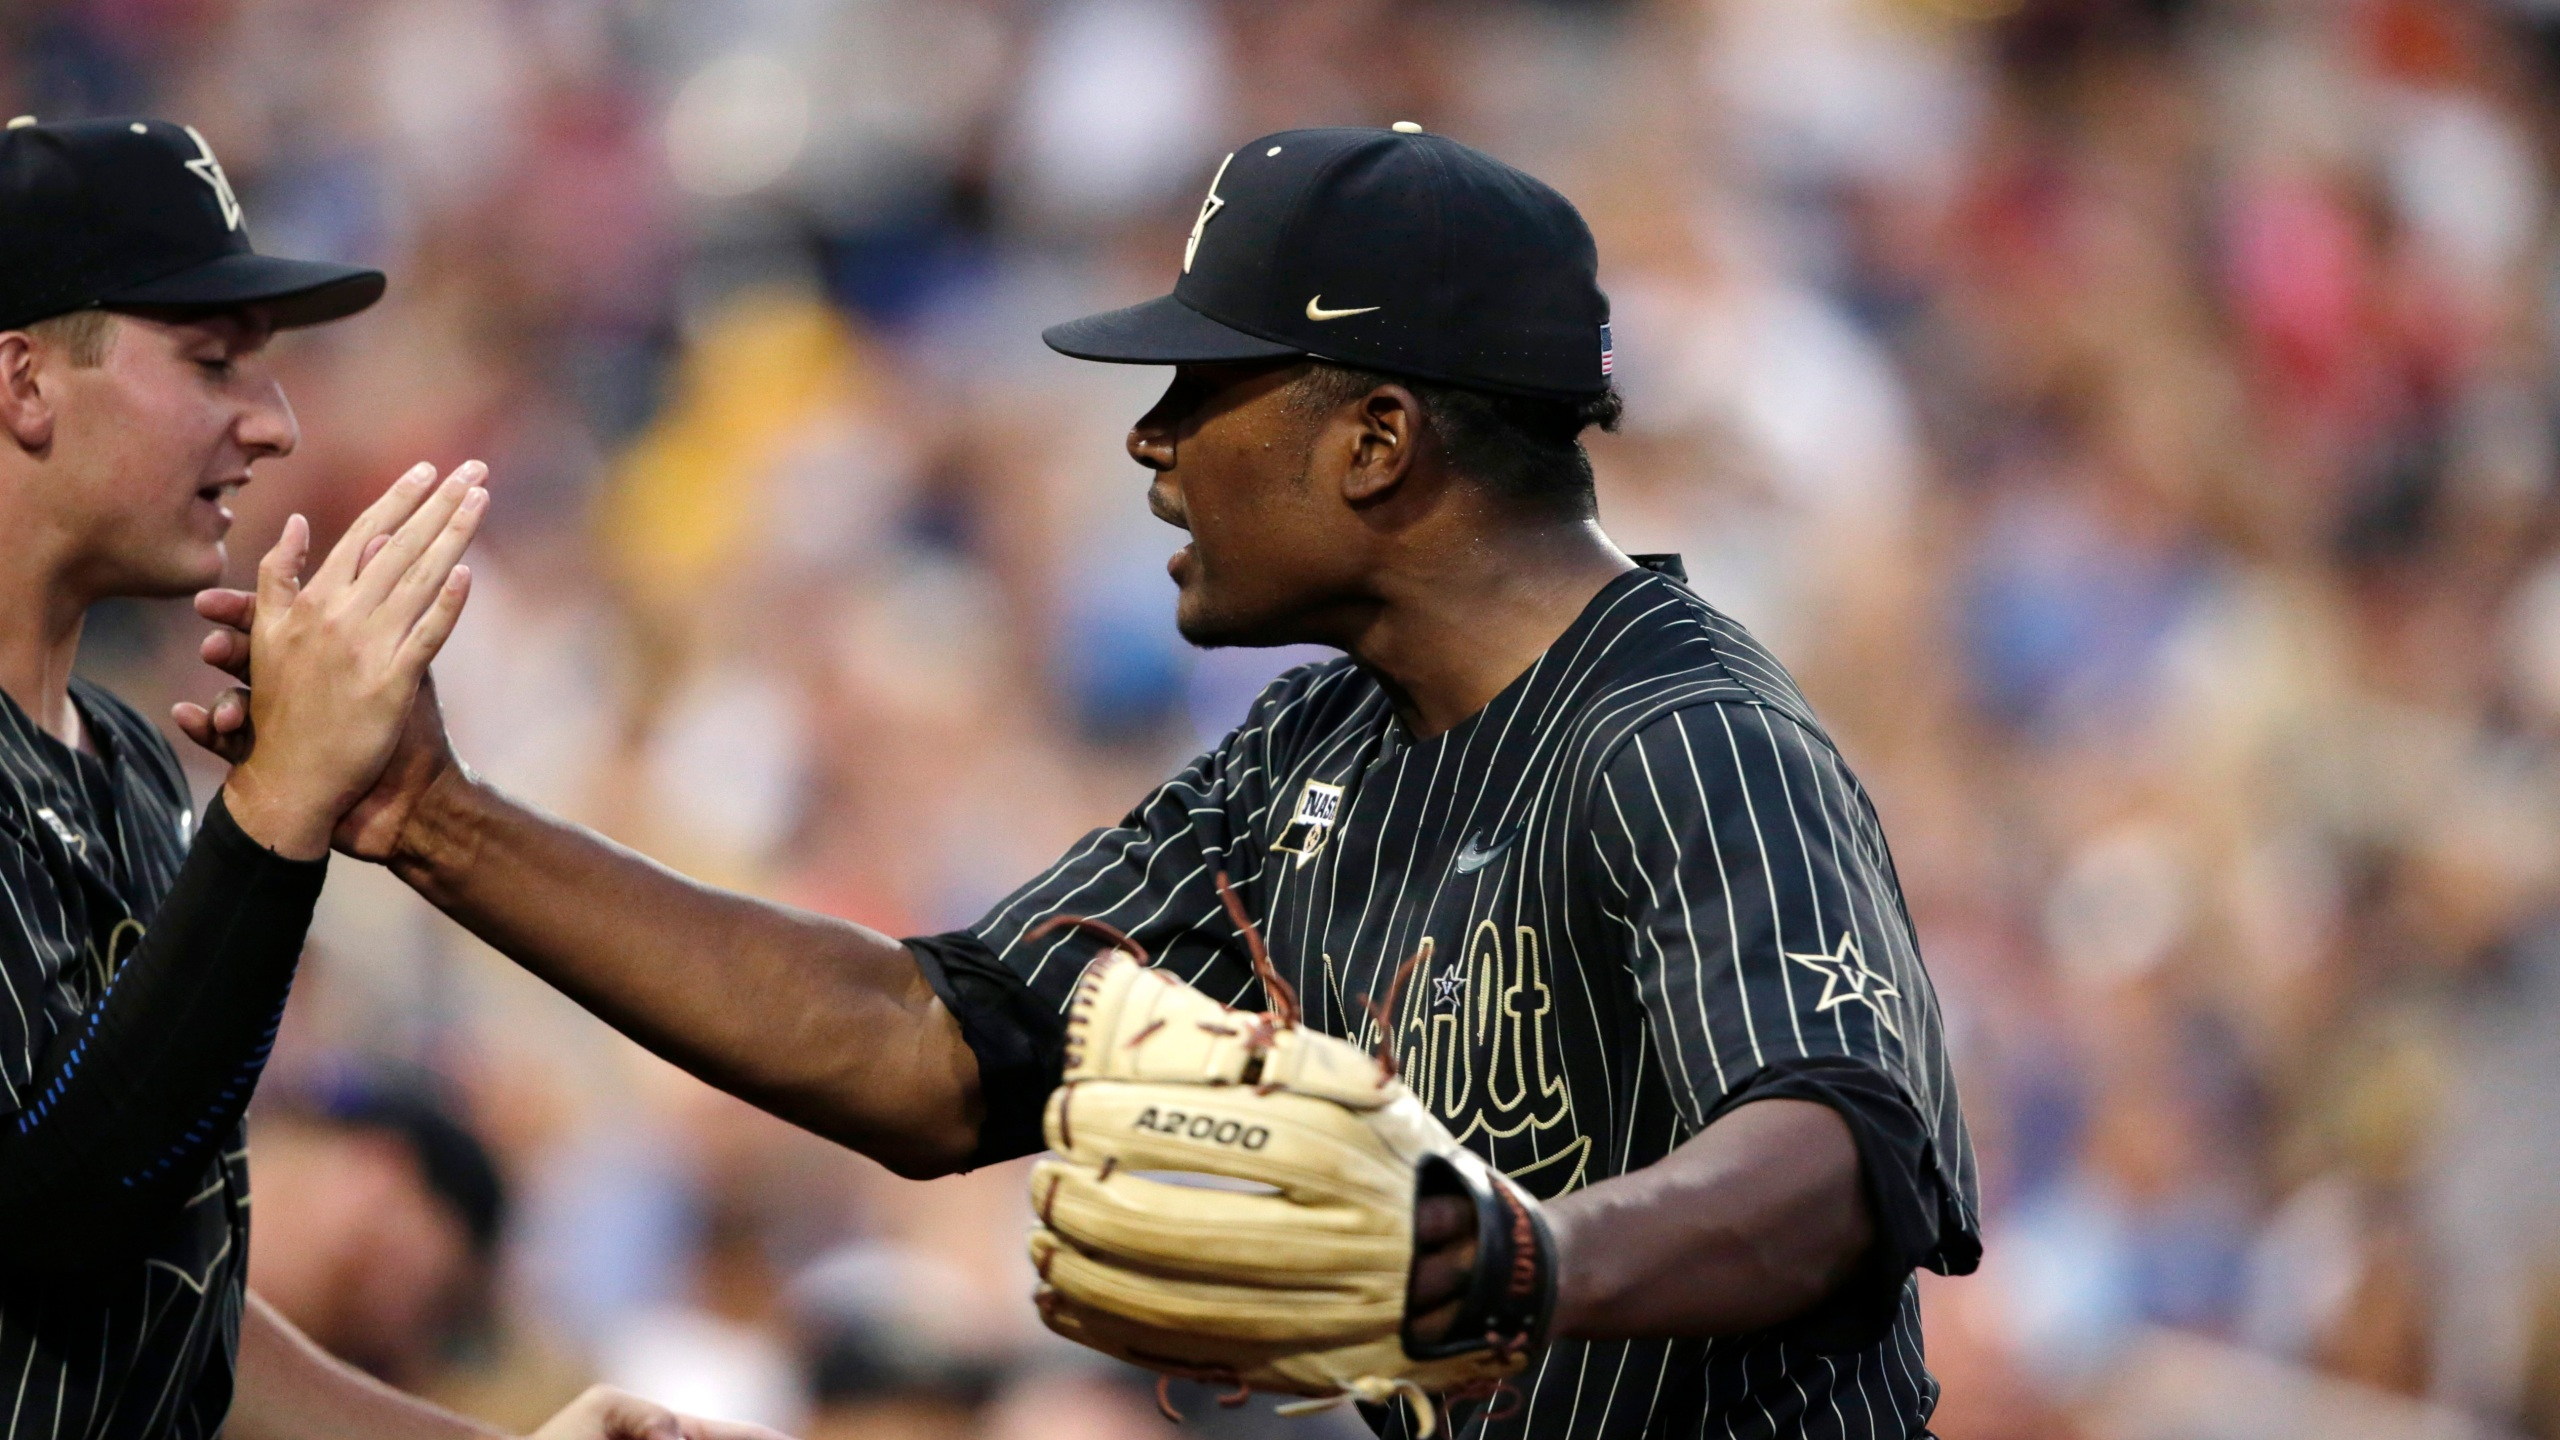 Vanderbilt pitcher Kumar Rockeer reacts at the end of the sixth inning against Michigan in Game 2 of the NCAA College World Series baseball finals in Omaha, Neb., Tuesday, June 25, 2019. (AP Photo/Nati Harnik)